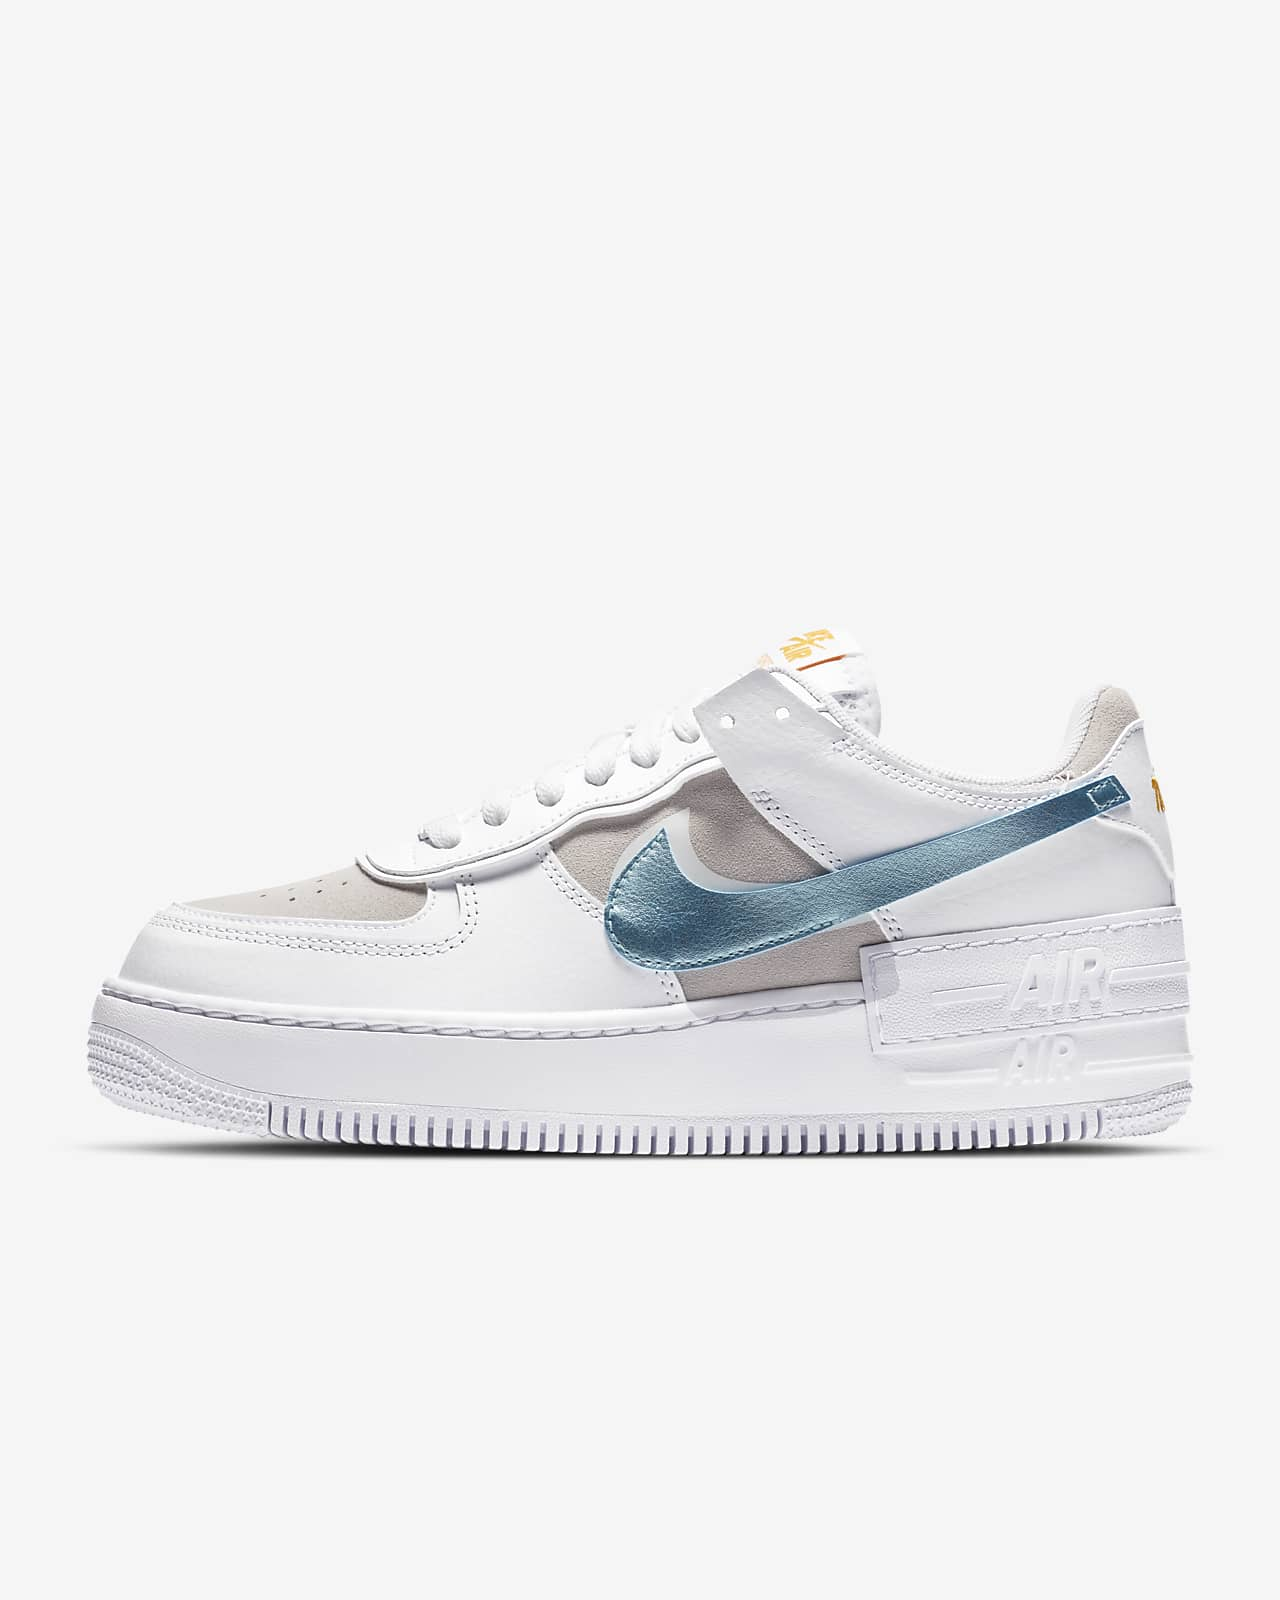 Nike Air Force 1 Shadow Women S Shoe Nike Jp Nike кеды nike air force 1 lv8 5. nike air force 1 shadow women s shoe